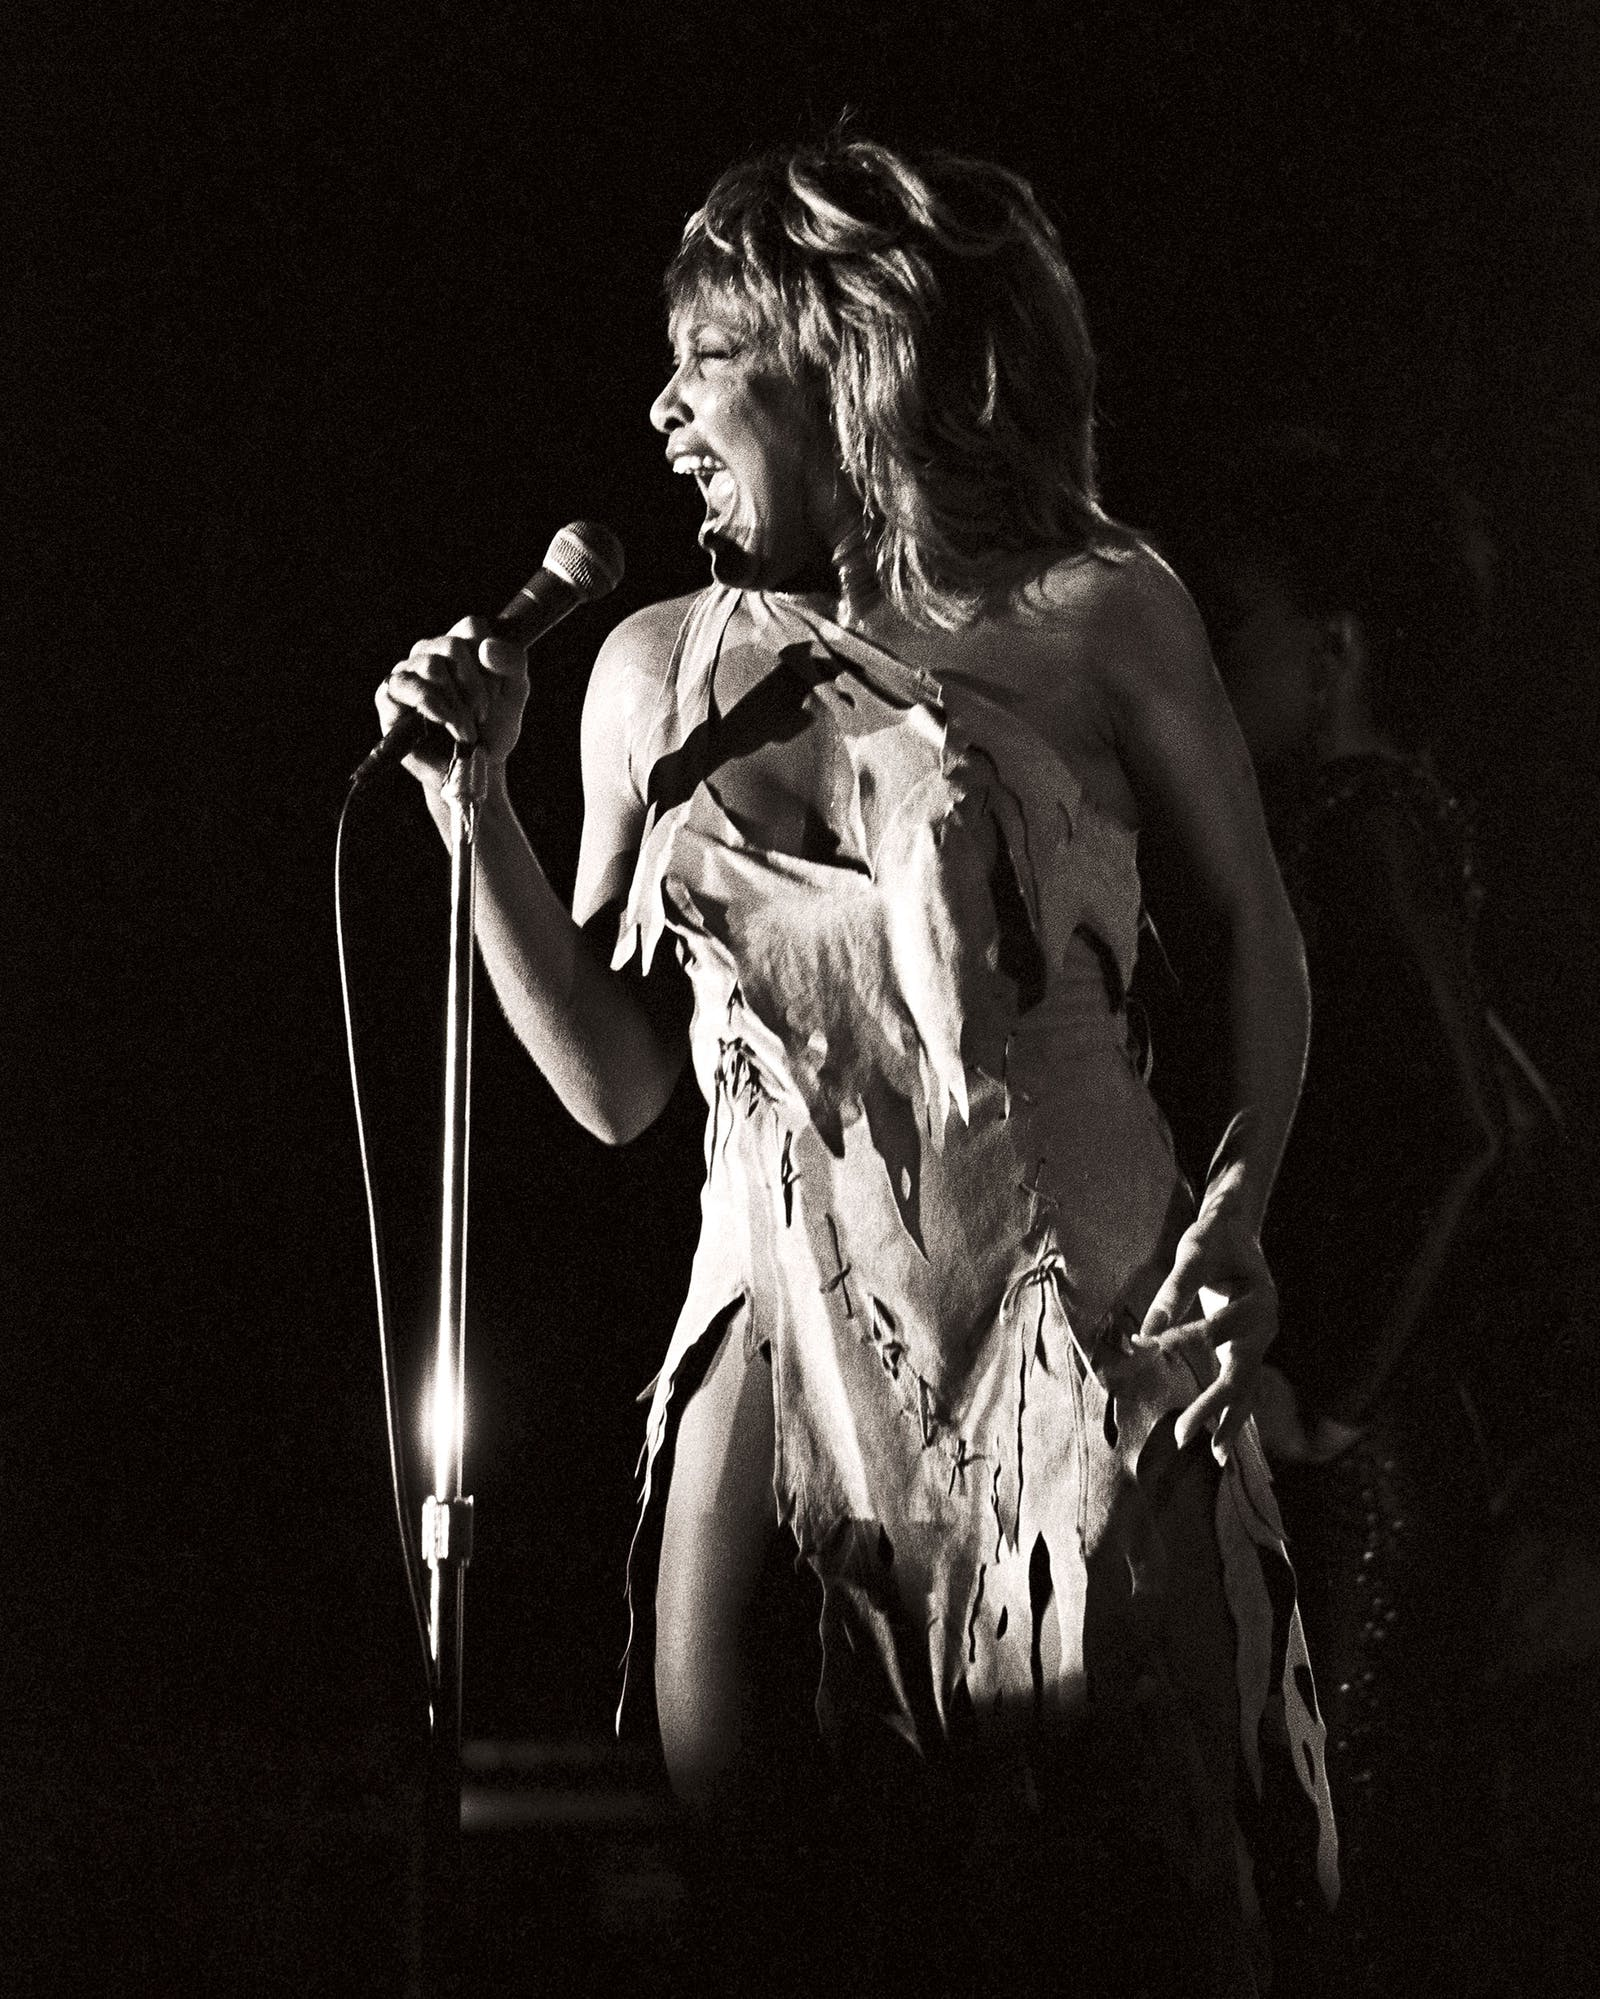 Tina Turner at the Opry House in 1983.